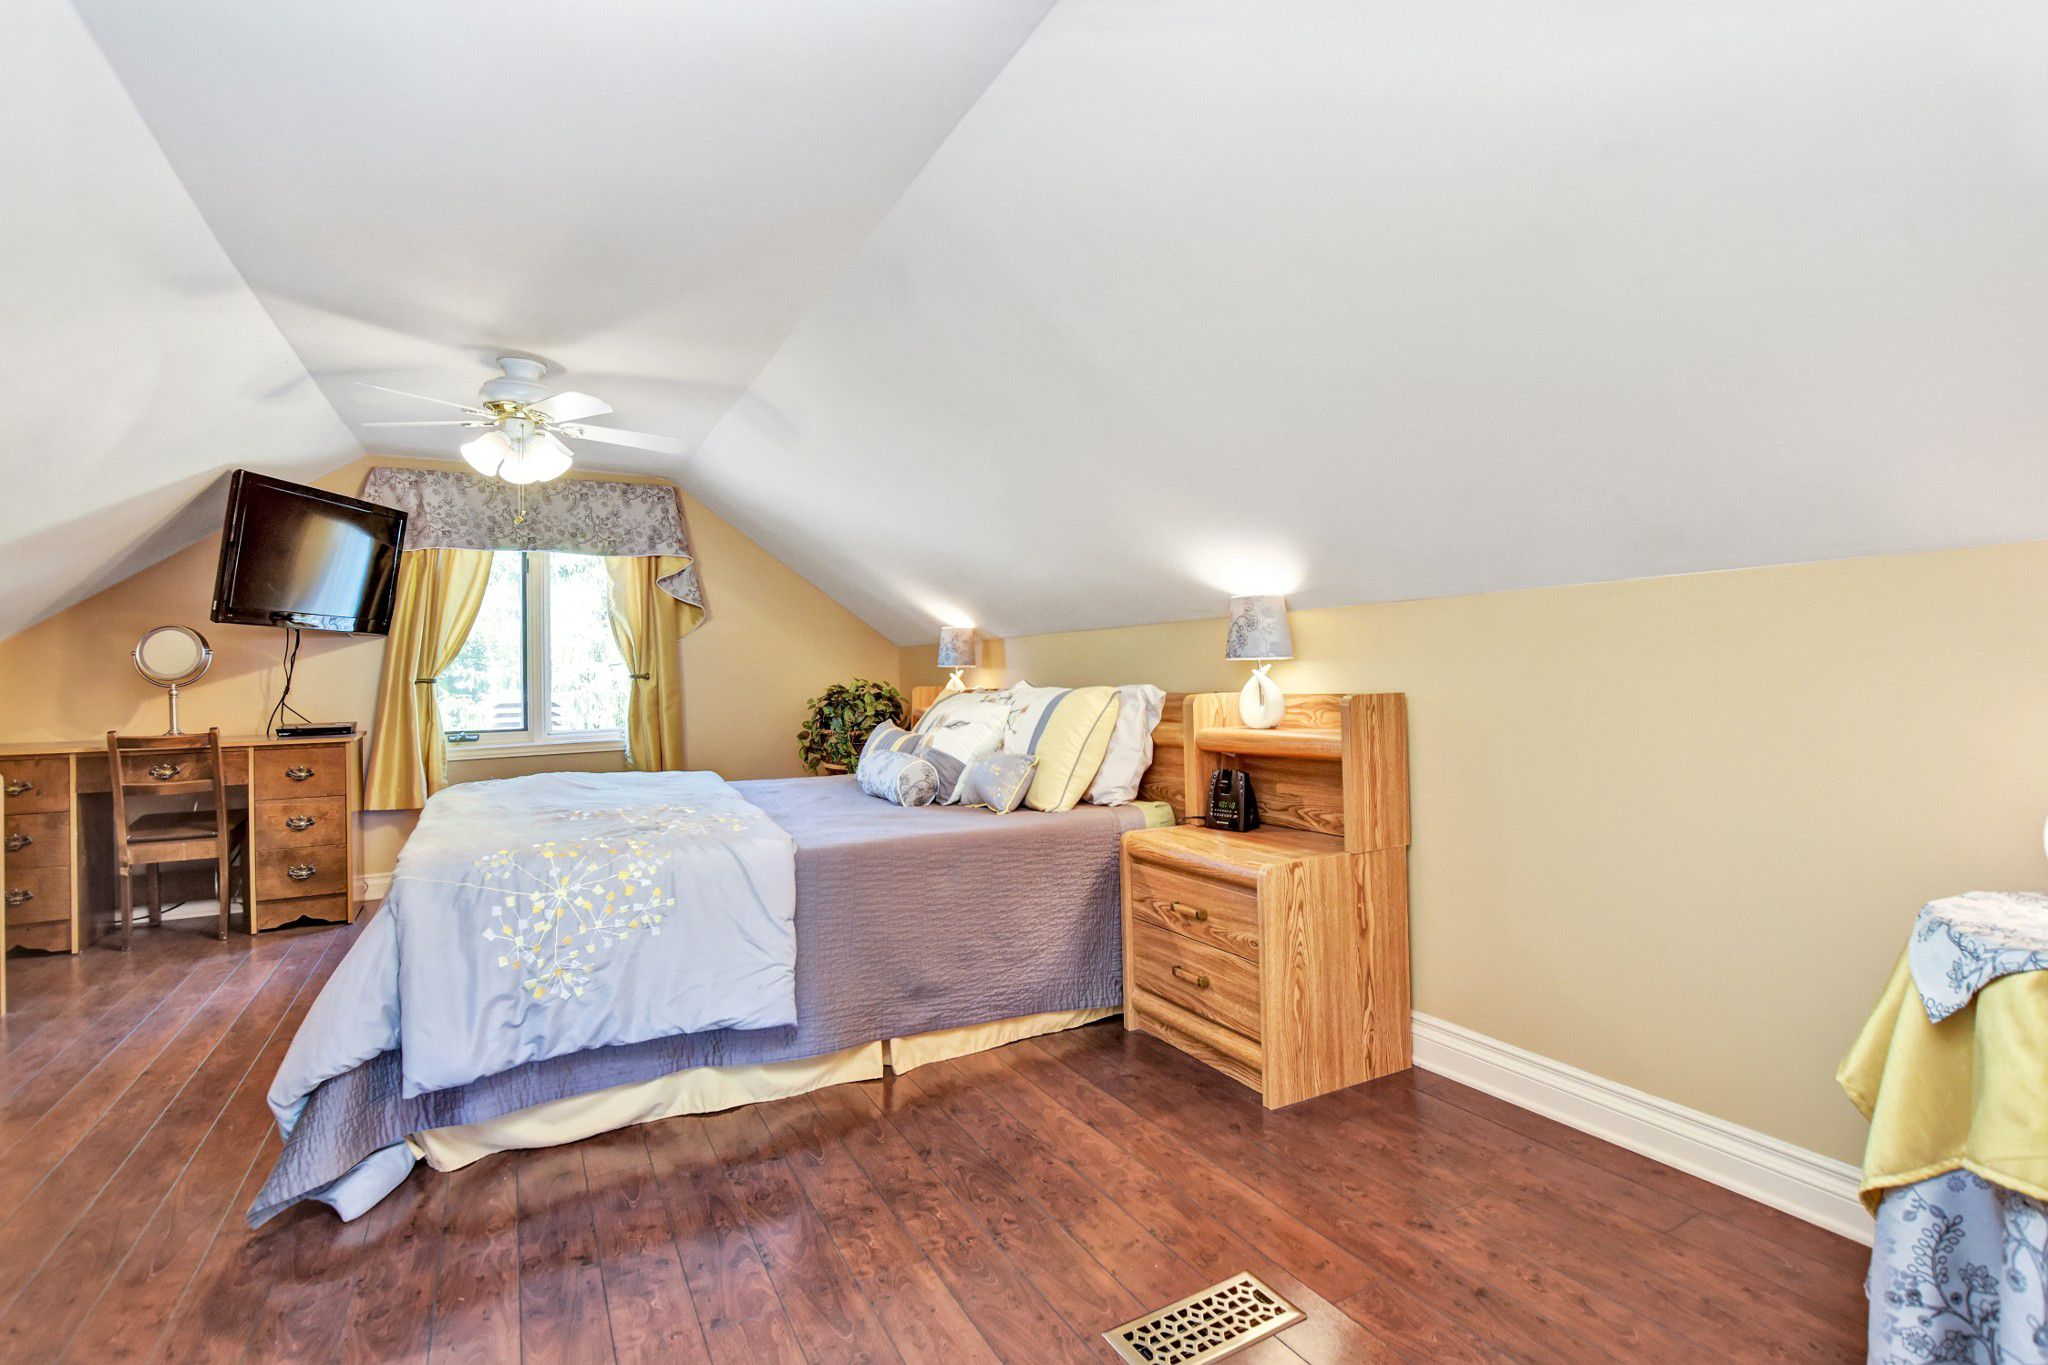 Photo 21: Photos: 5000 Dunning Road in Ottawa: Bearbrook House for sale